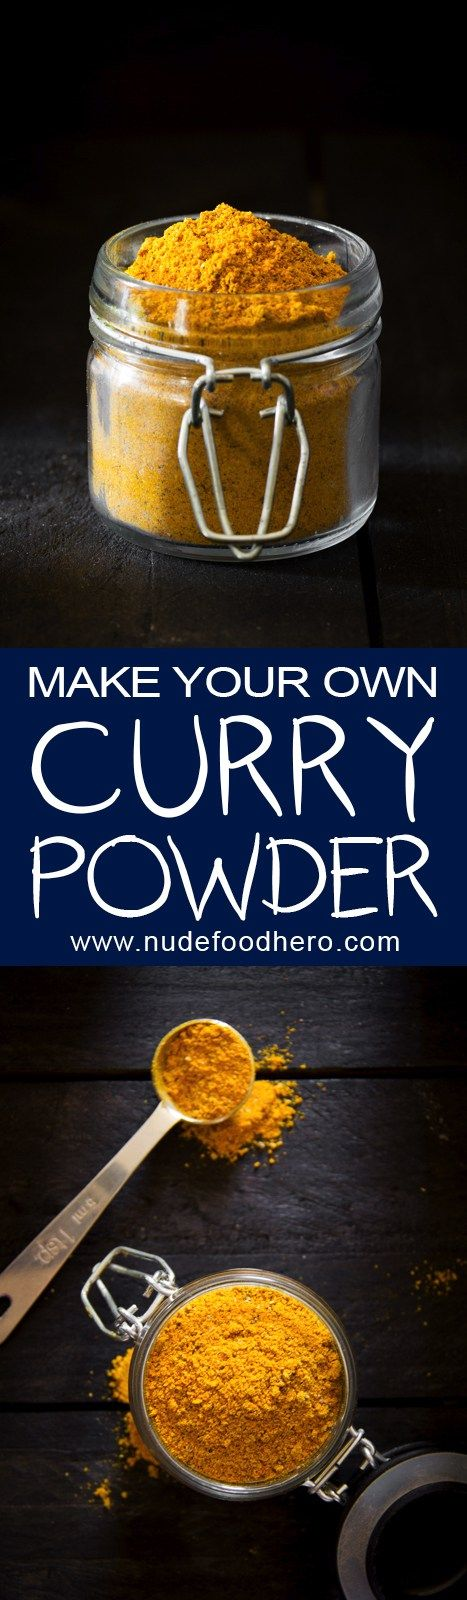 Do it yourself cooking has never been so quick, or easy, as with this homemade Curry Powder Recipe.